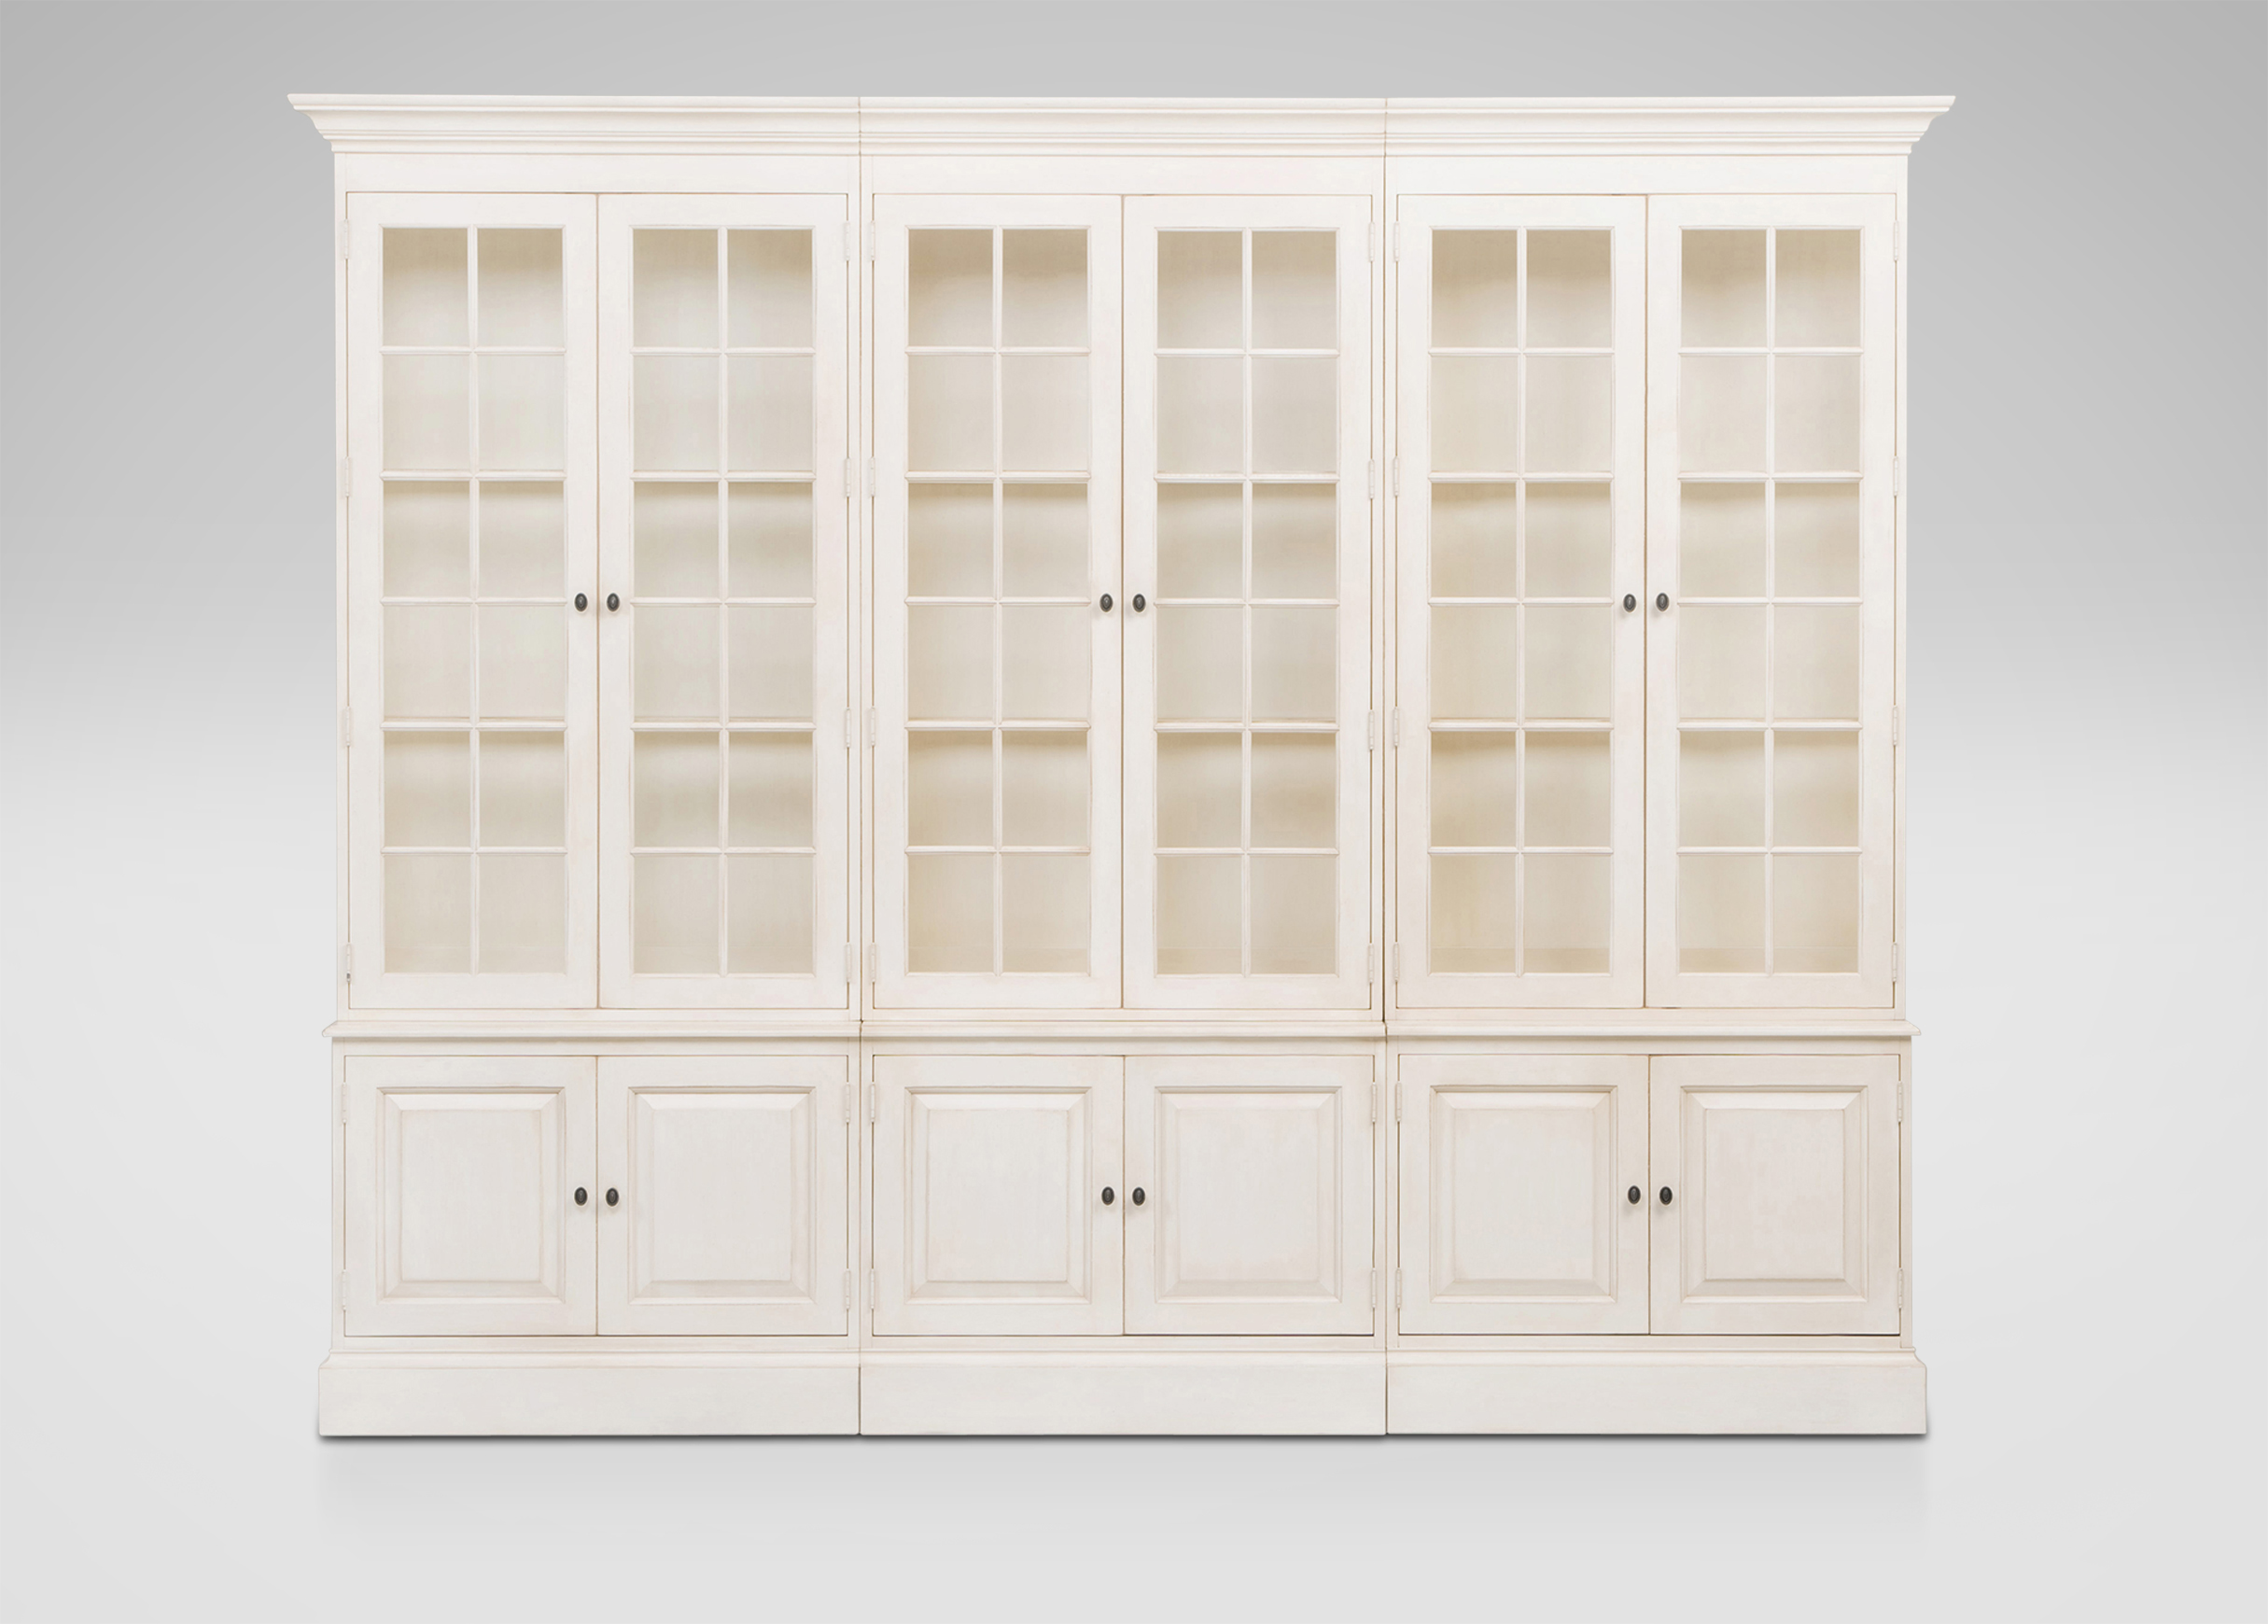 bookcase legacy storages allen throughout gallery of ethan attachment displaying most library furniture up ideas date photos bookcases double view brilliant accent arch to